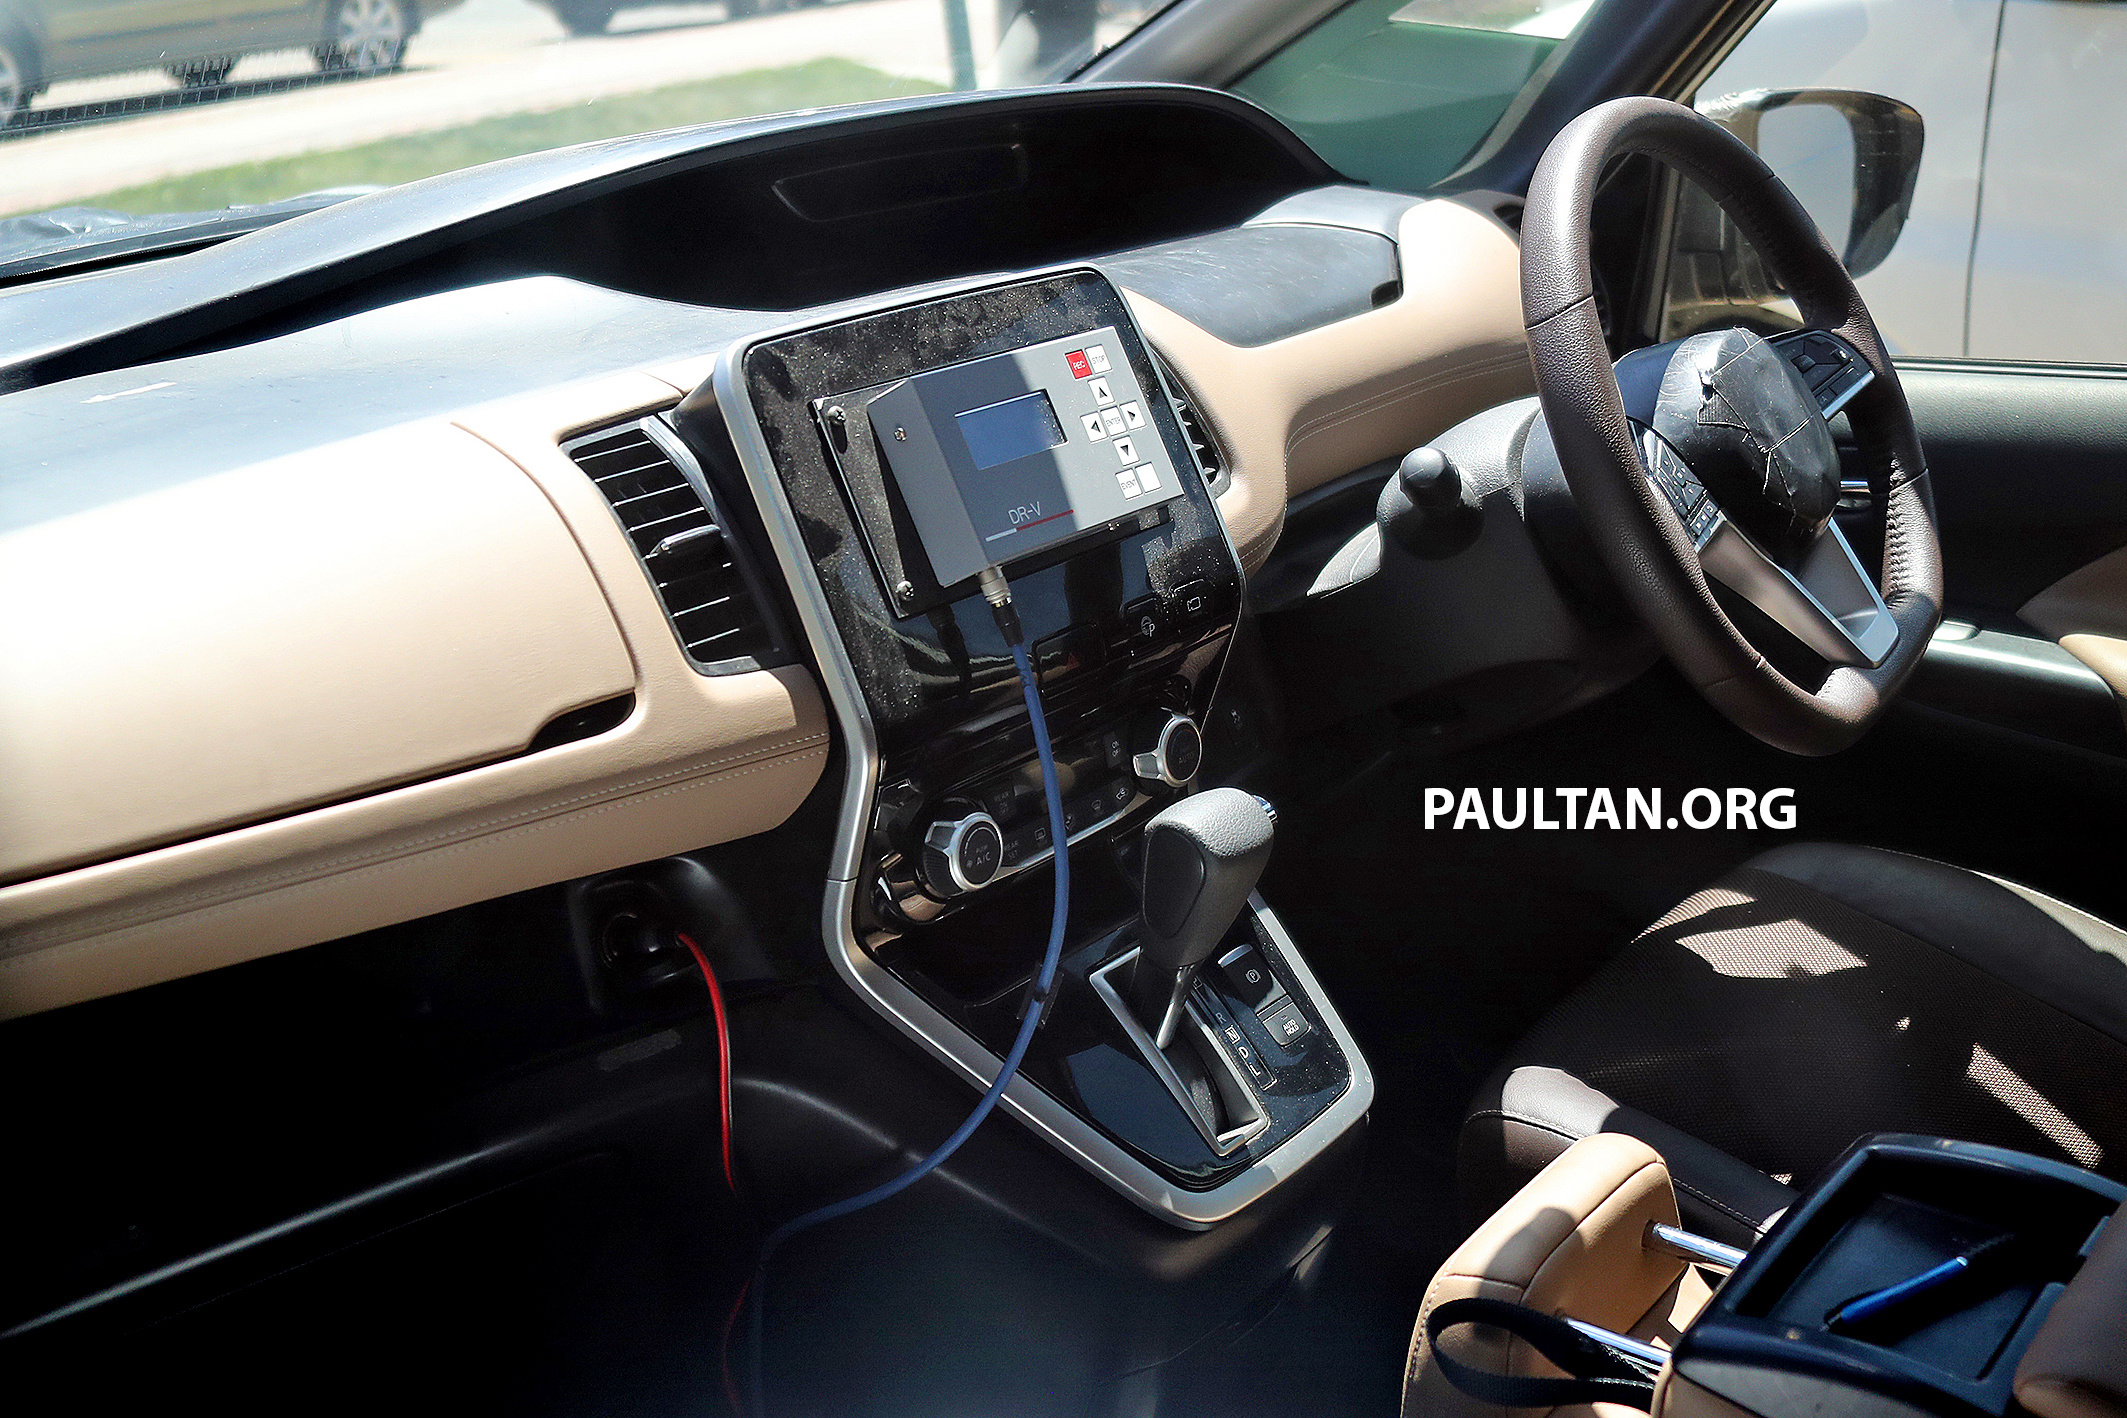 SPIED: Next-gen Nissan Serena - new interior revealed